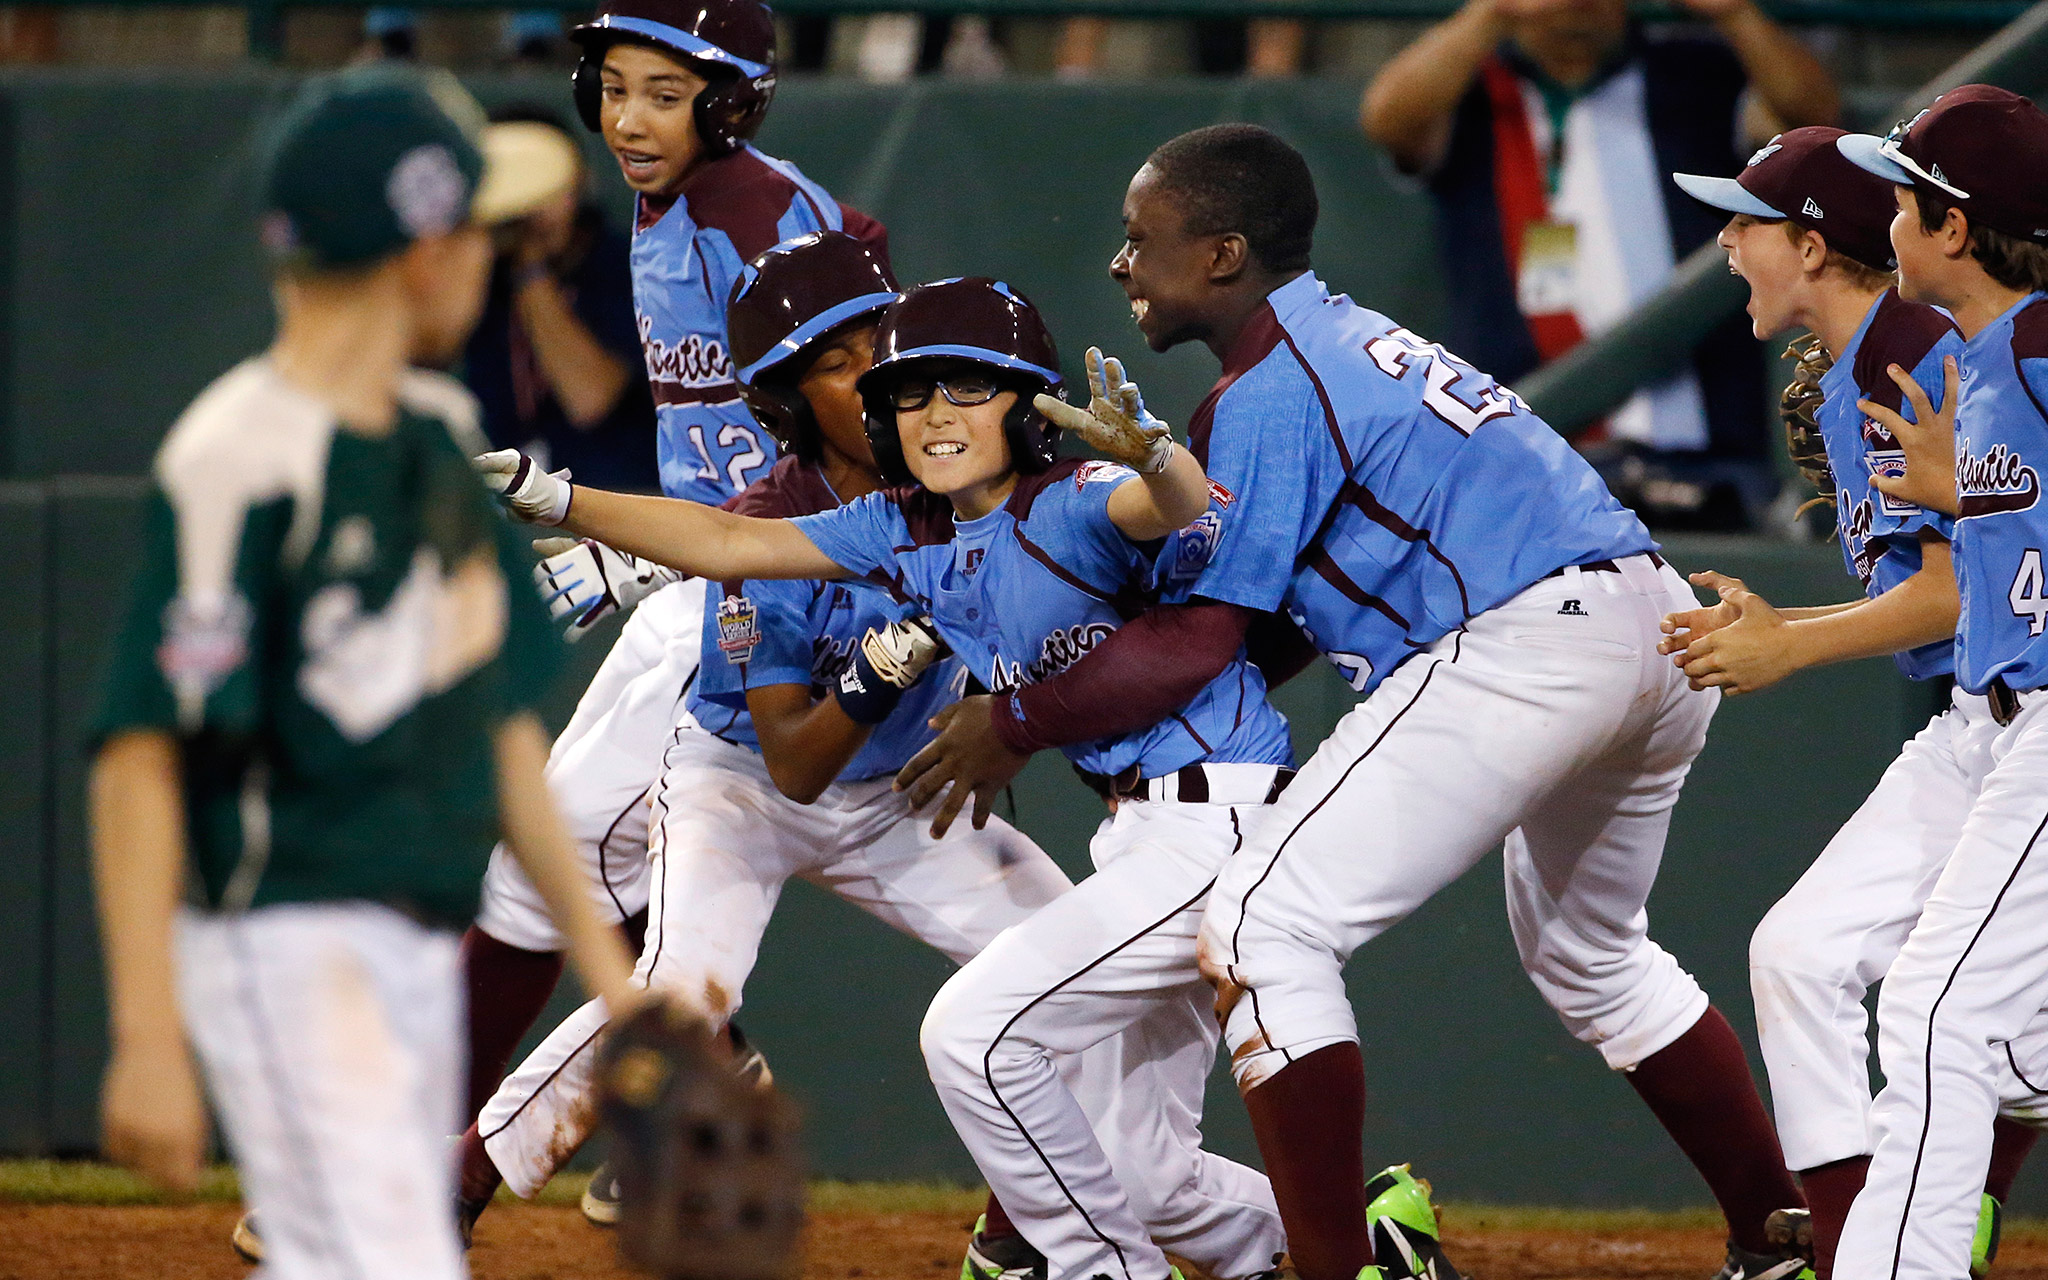 Tai Shanahan, center, was mobbed by his teammates when his walk-off single gave Philadelphia a 7-6 win over Pearland, Texas, at the Little League World Series.